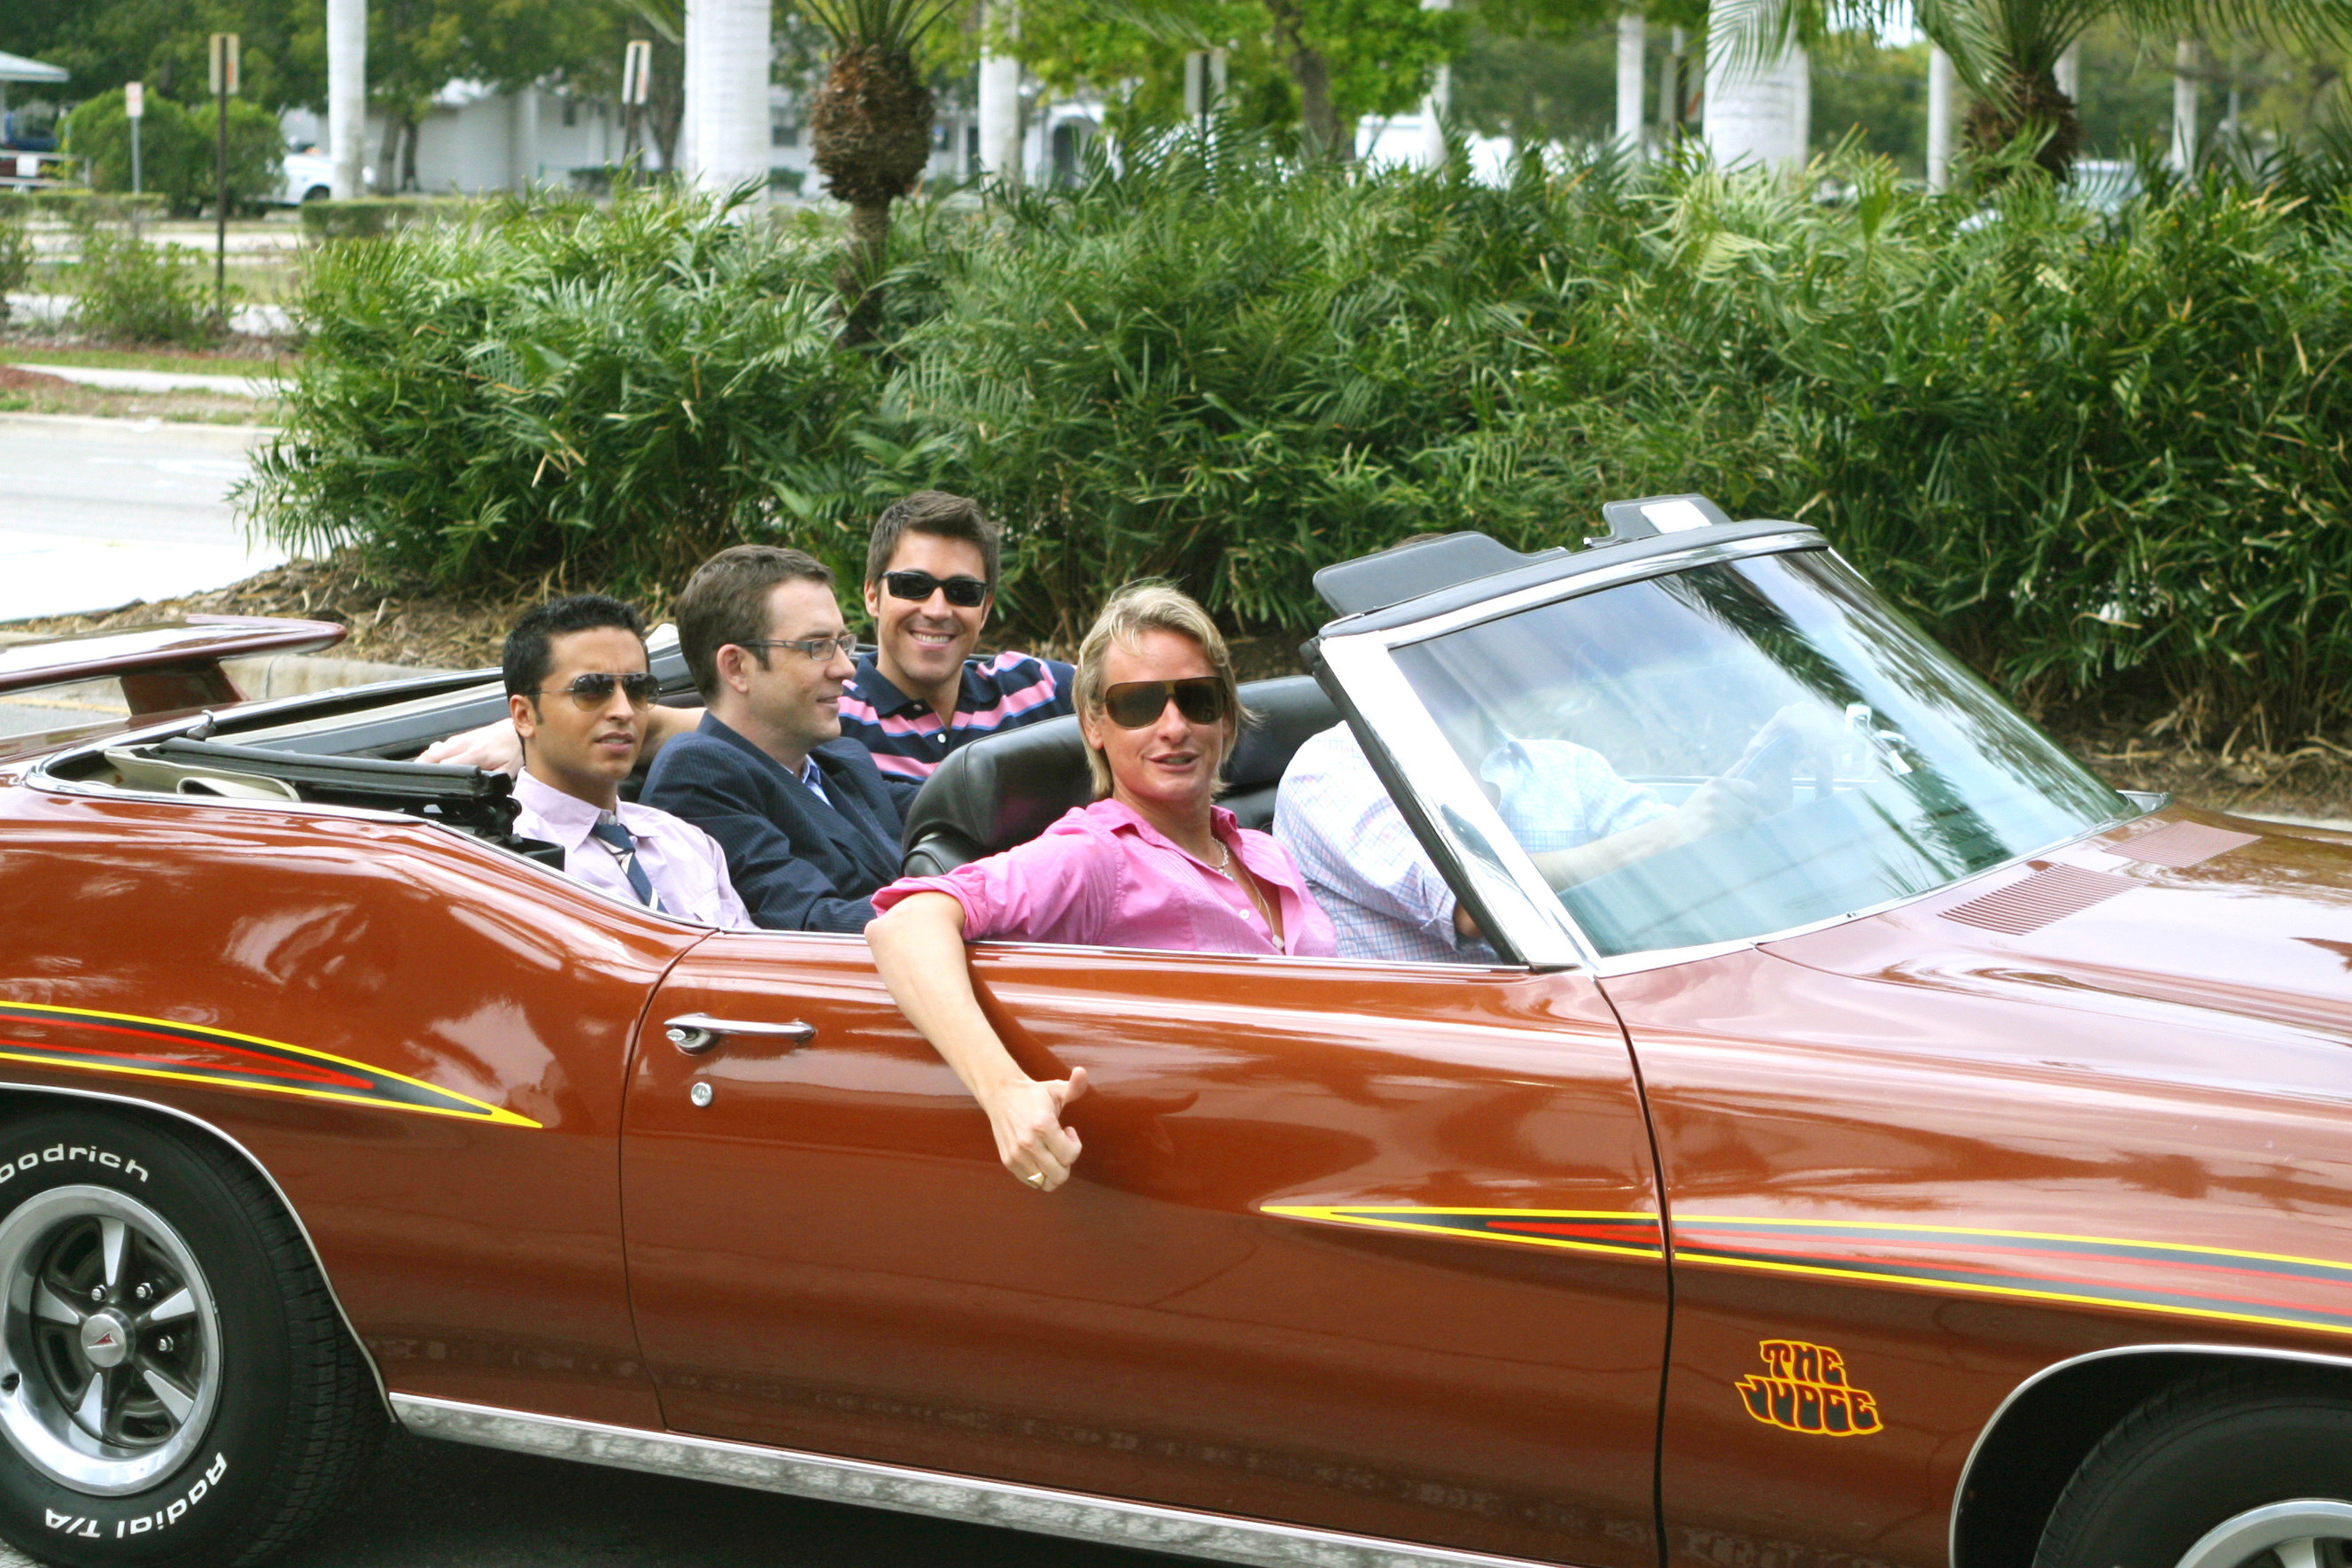 Jai Rodriguez, Ted Allen, Kyan Douglas, Carson Kressley, and Thom Filicia ride in a convertible